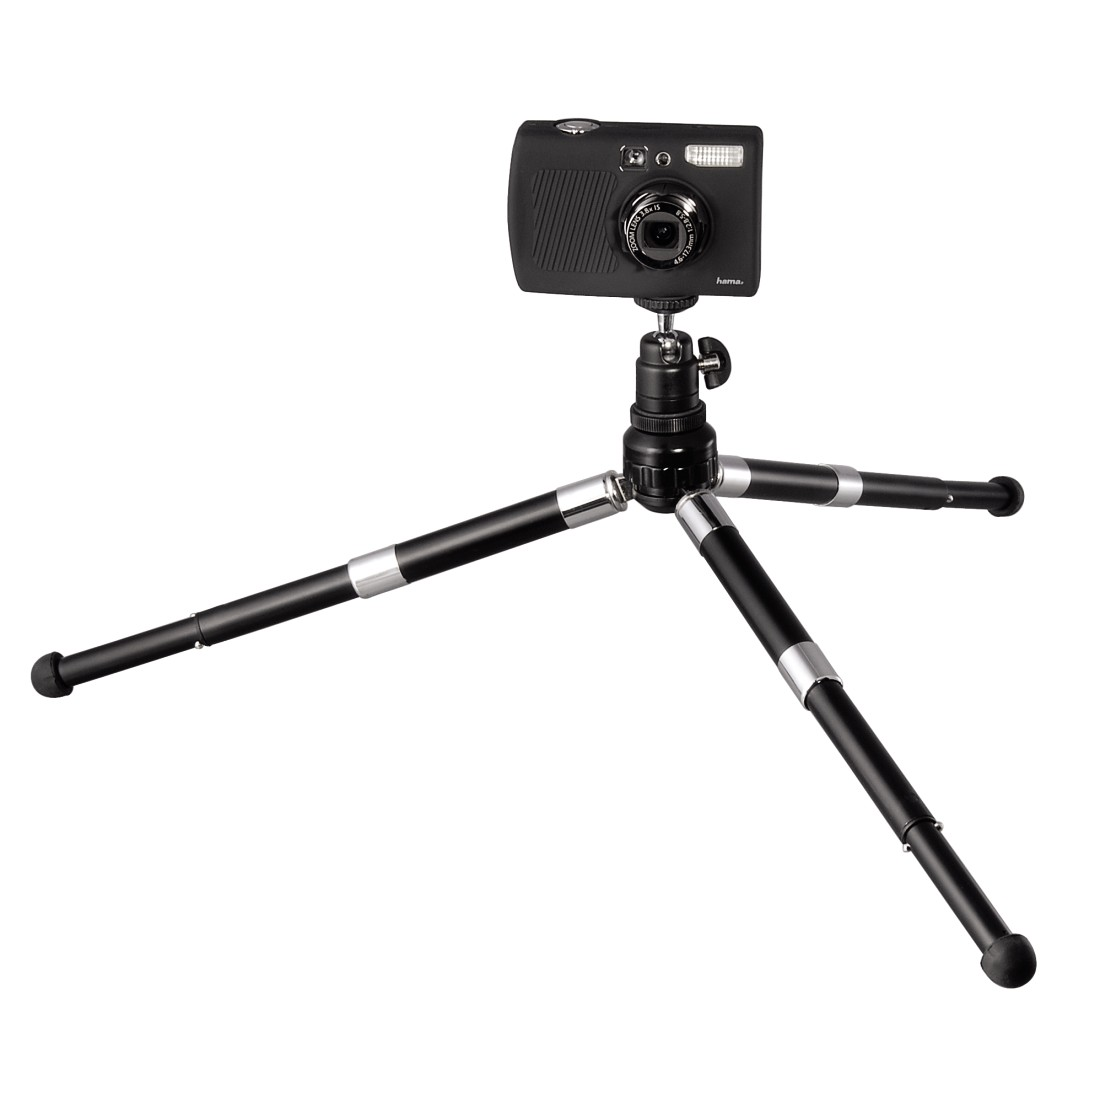 awx3 High-Res Appliance 3 - Hama, Traveller Multi Table Top Tripod, with Removable Telescopic Tube